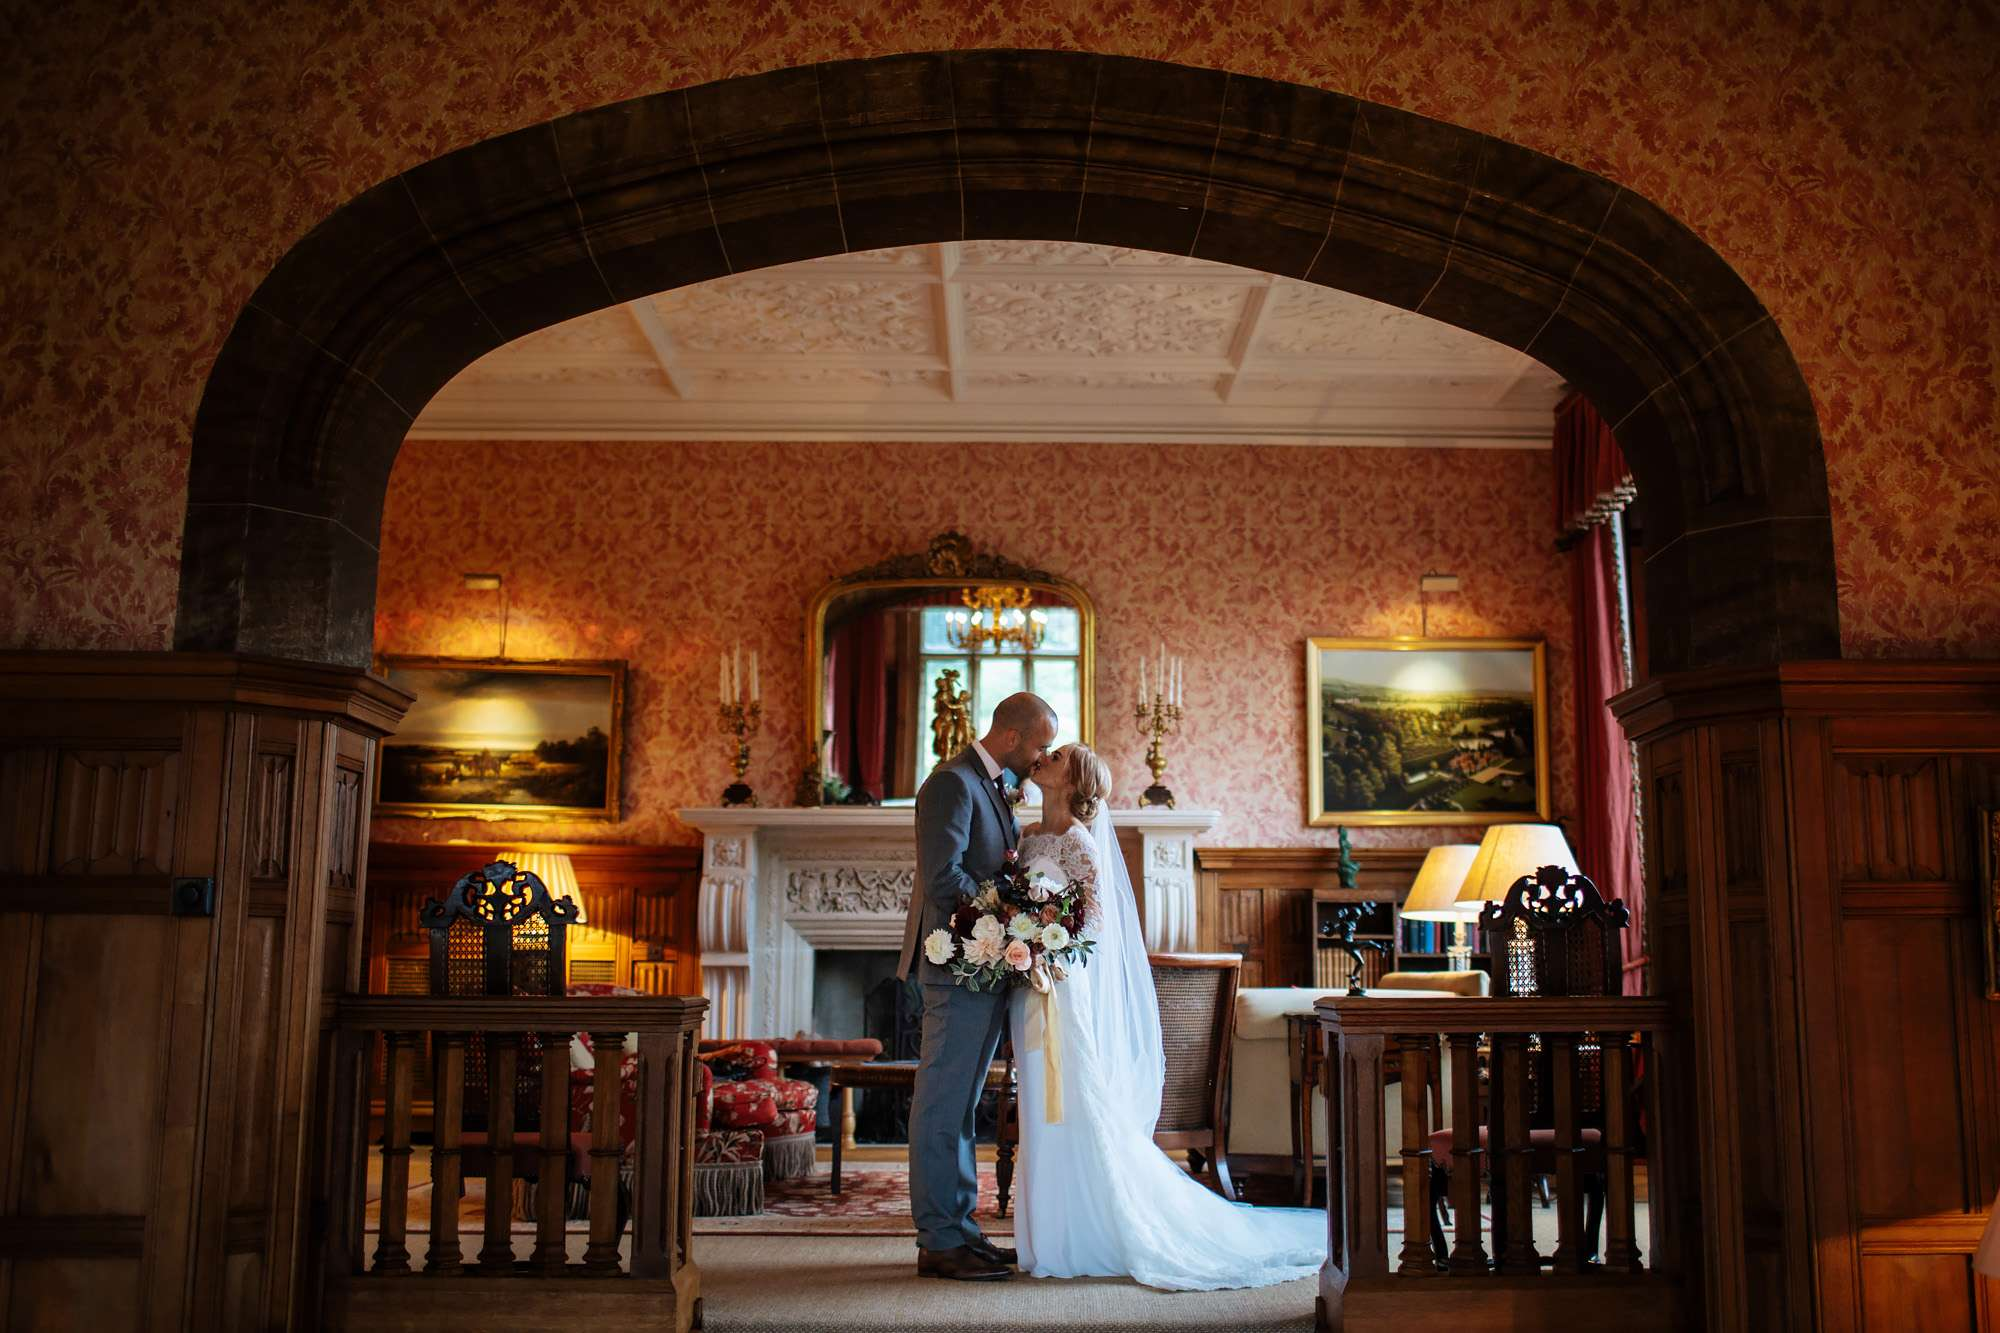 Bride and groom pose for a portrait on their wedding day